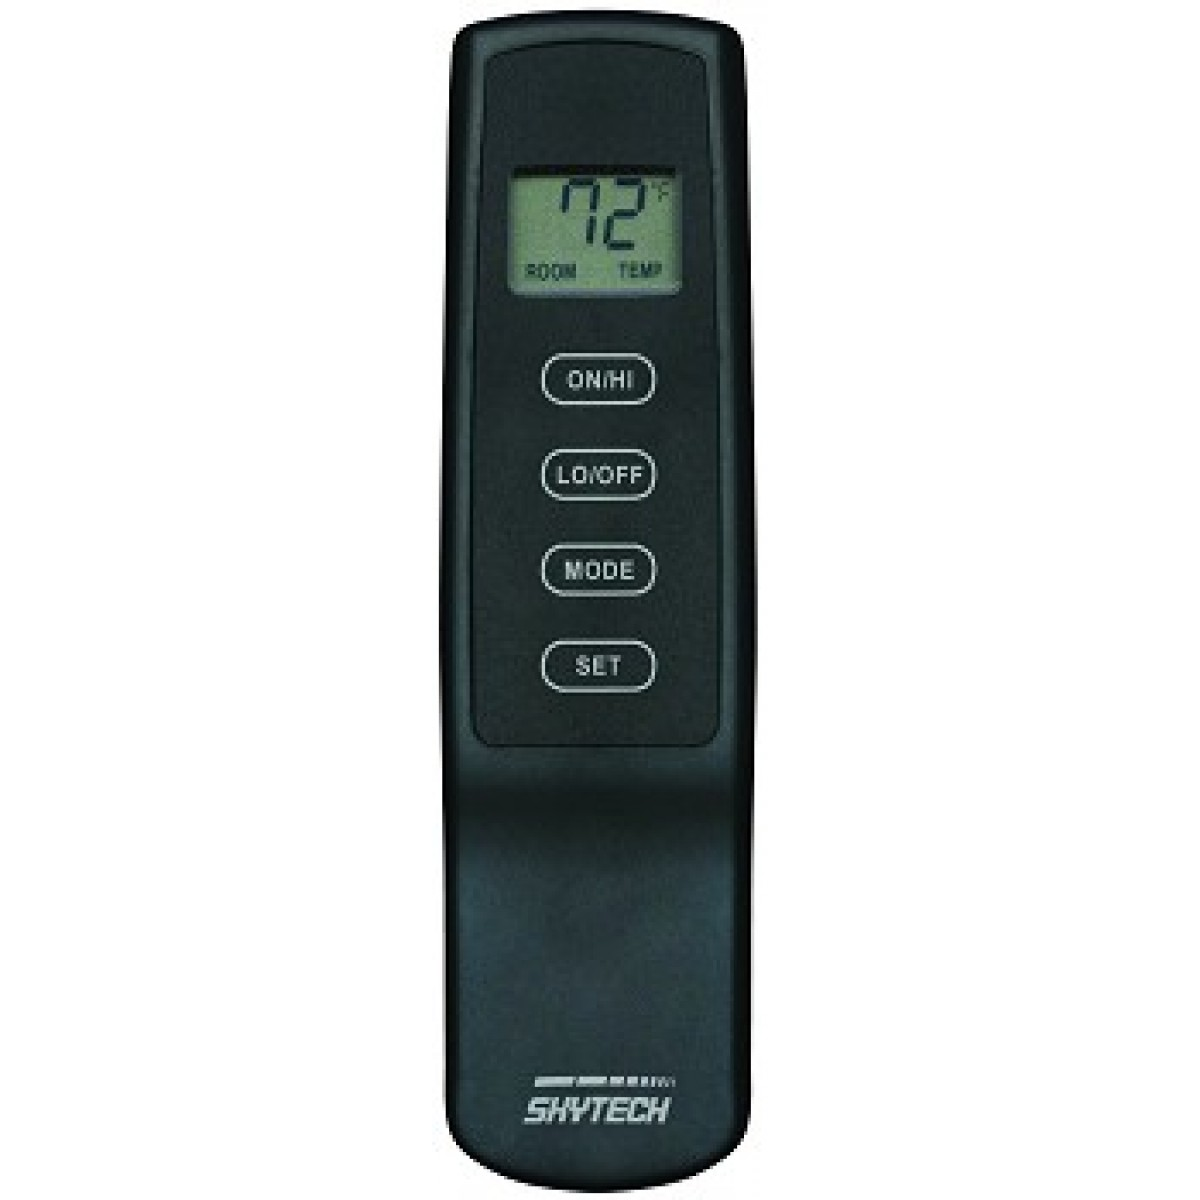 Skytech Sky 1410t Lcd A 110 Volt Electric Fireplace Remote